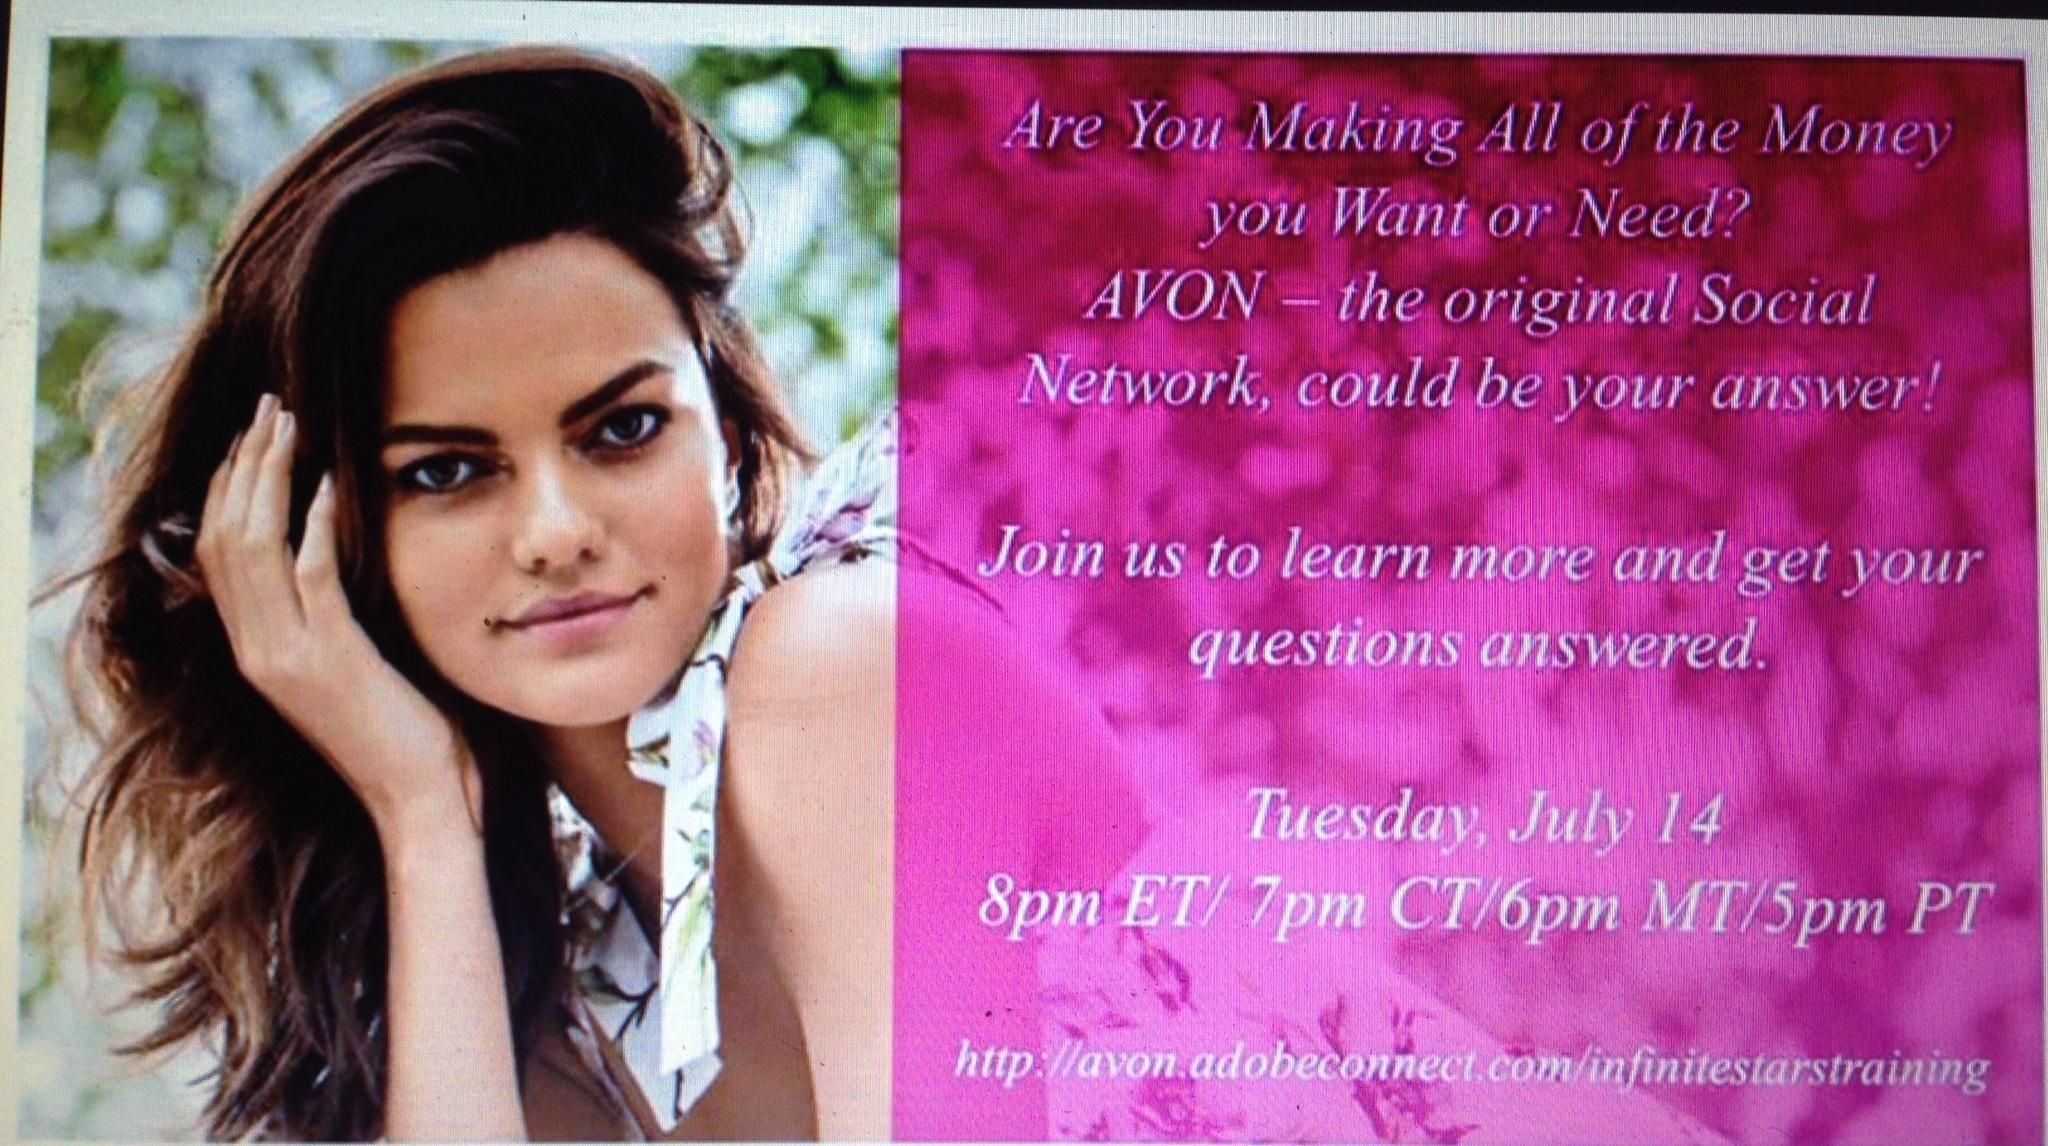 Have you ever thought about becoming an Avon Representative or even a personal shopper? Hop onto this webinar TONIGHT (7-14-15) at 5:00 p.m..  No obligation, only information, just click the link!  IT'S FREE! https://avon.adobeconnect.com/infinitestarstraining - Hear something you like? Email me afterwards at jfreemyers@gmail.com or to get started right away got to startavon.com and enter Reference Code: JFREEMYERS to get started now!